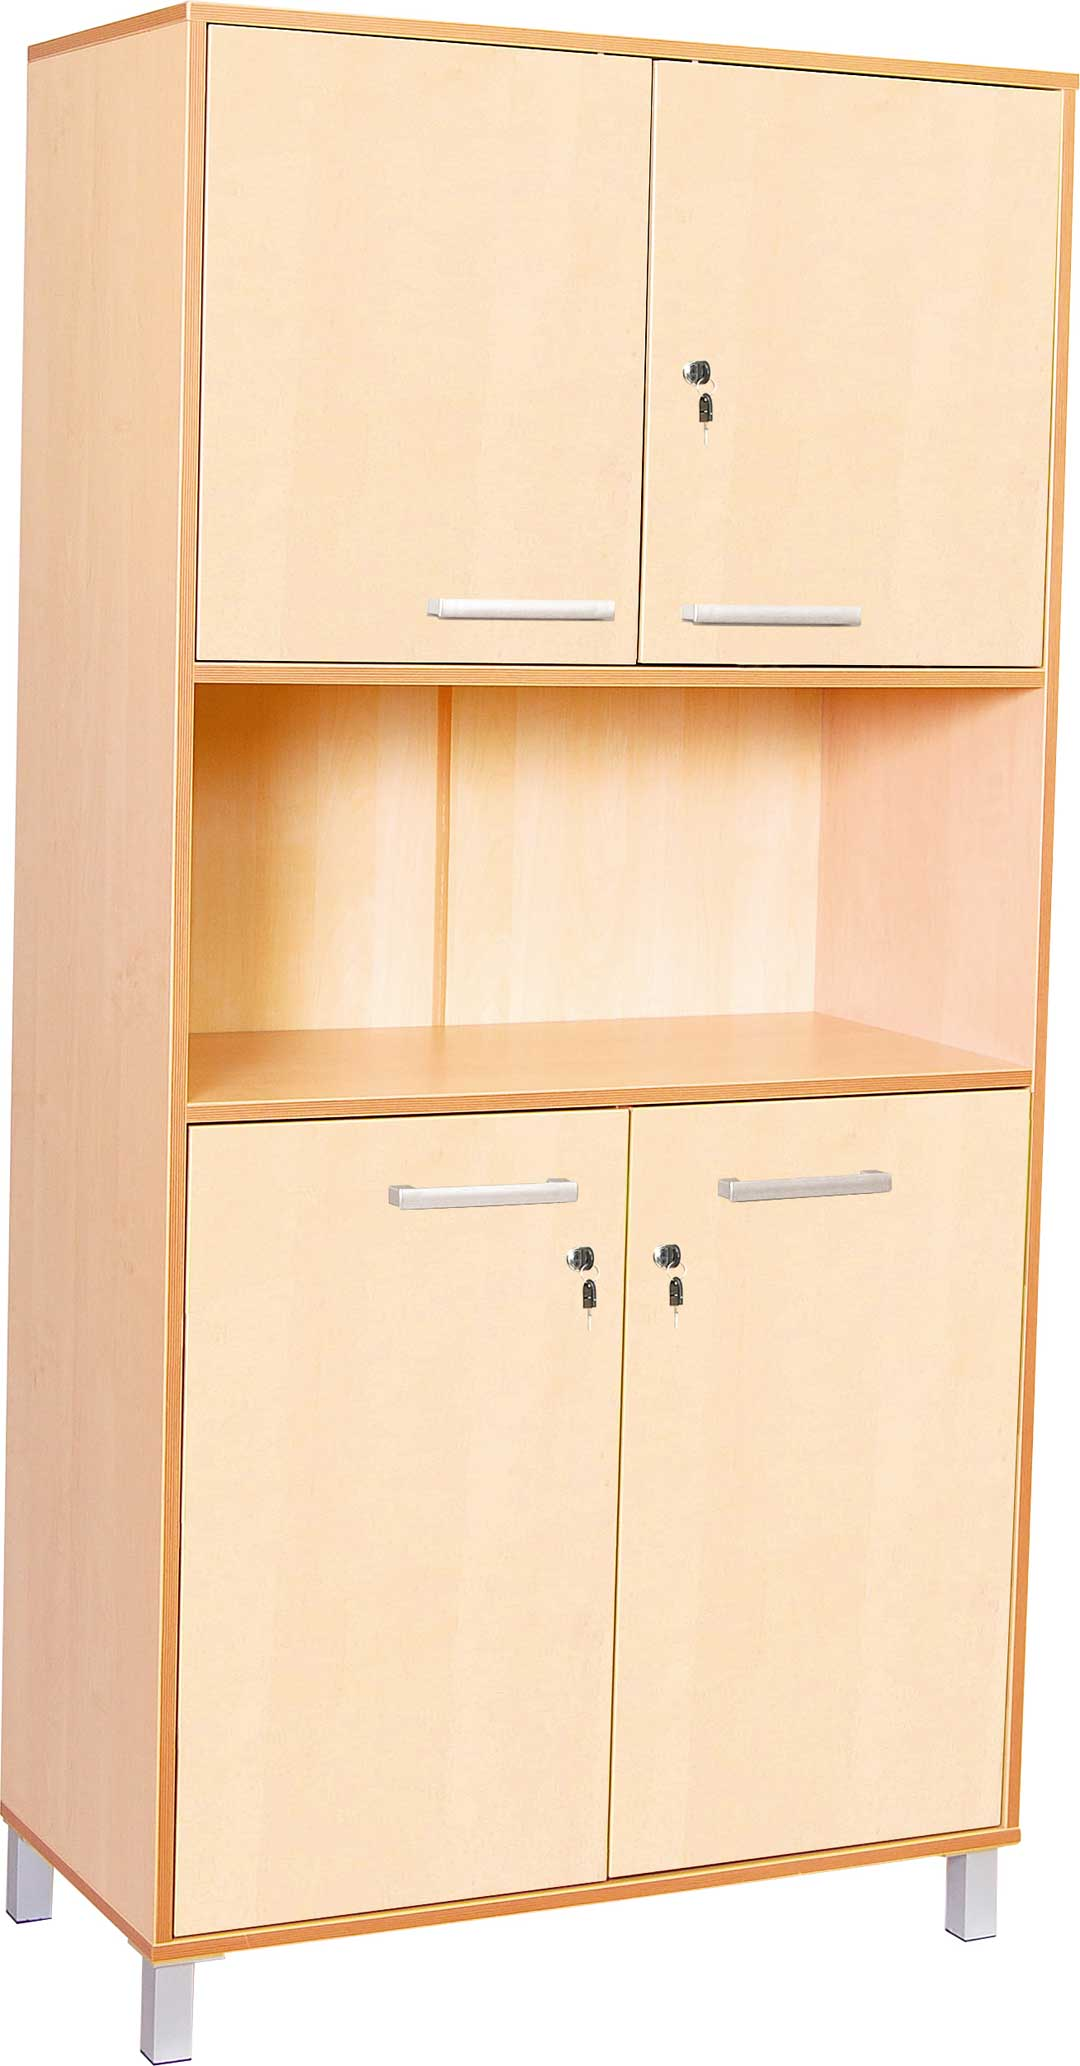 Classic High Cabinet with doors and locks - Birch Doors